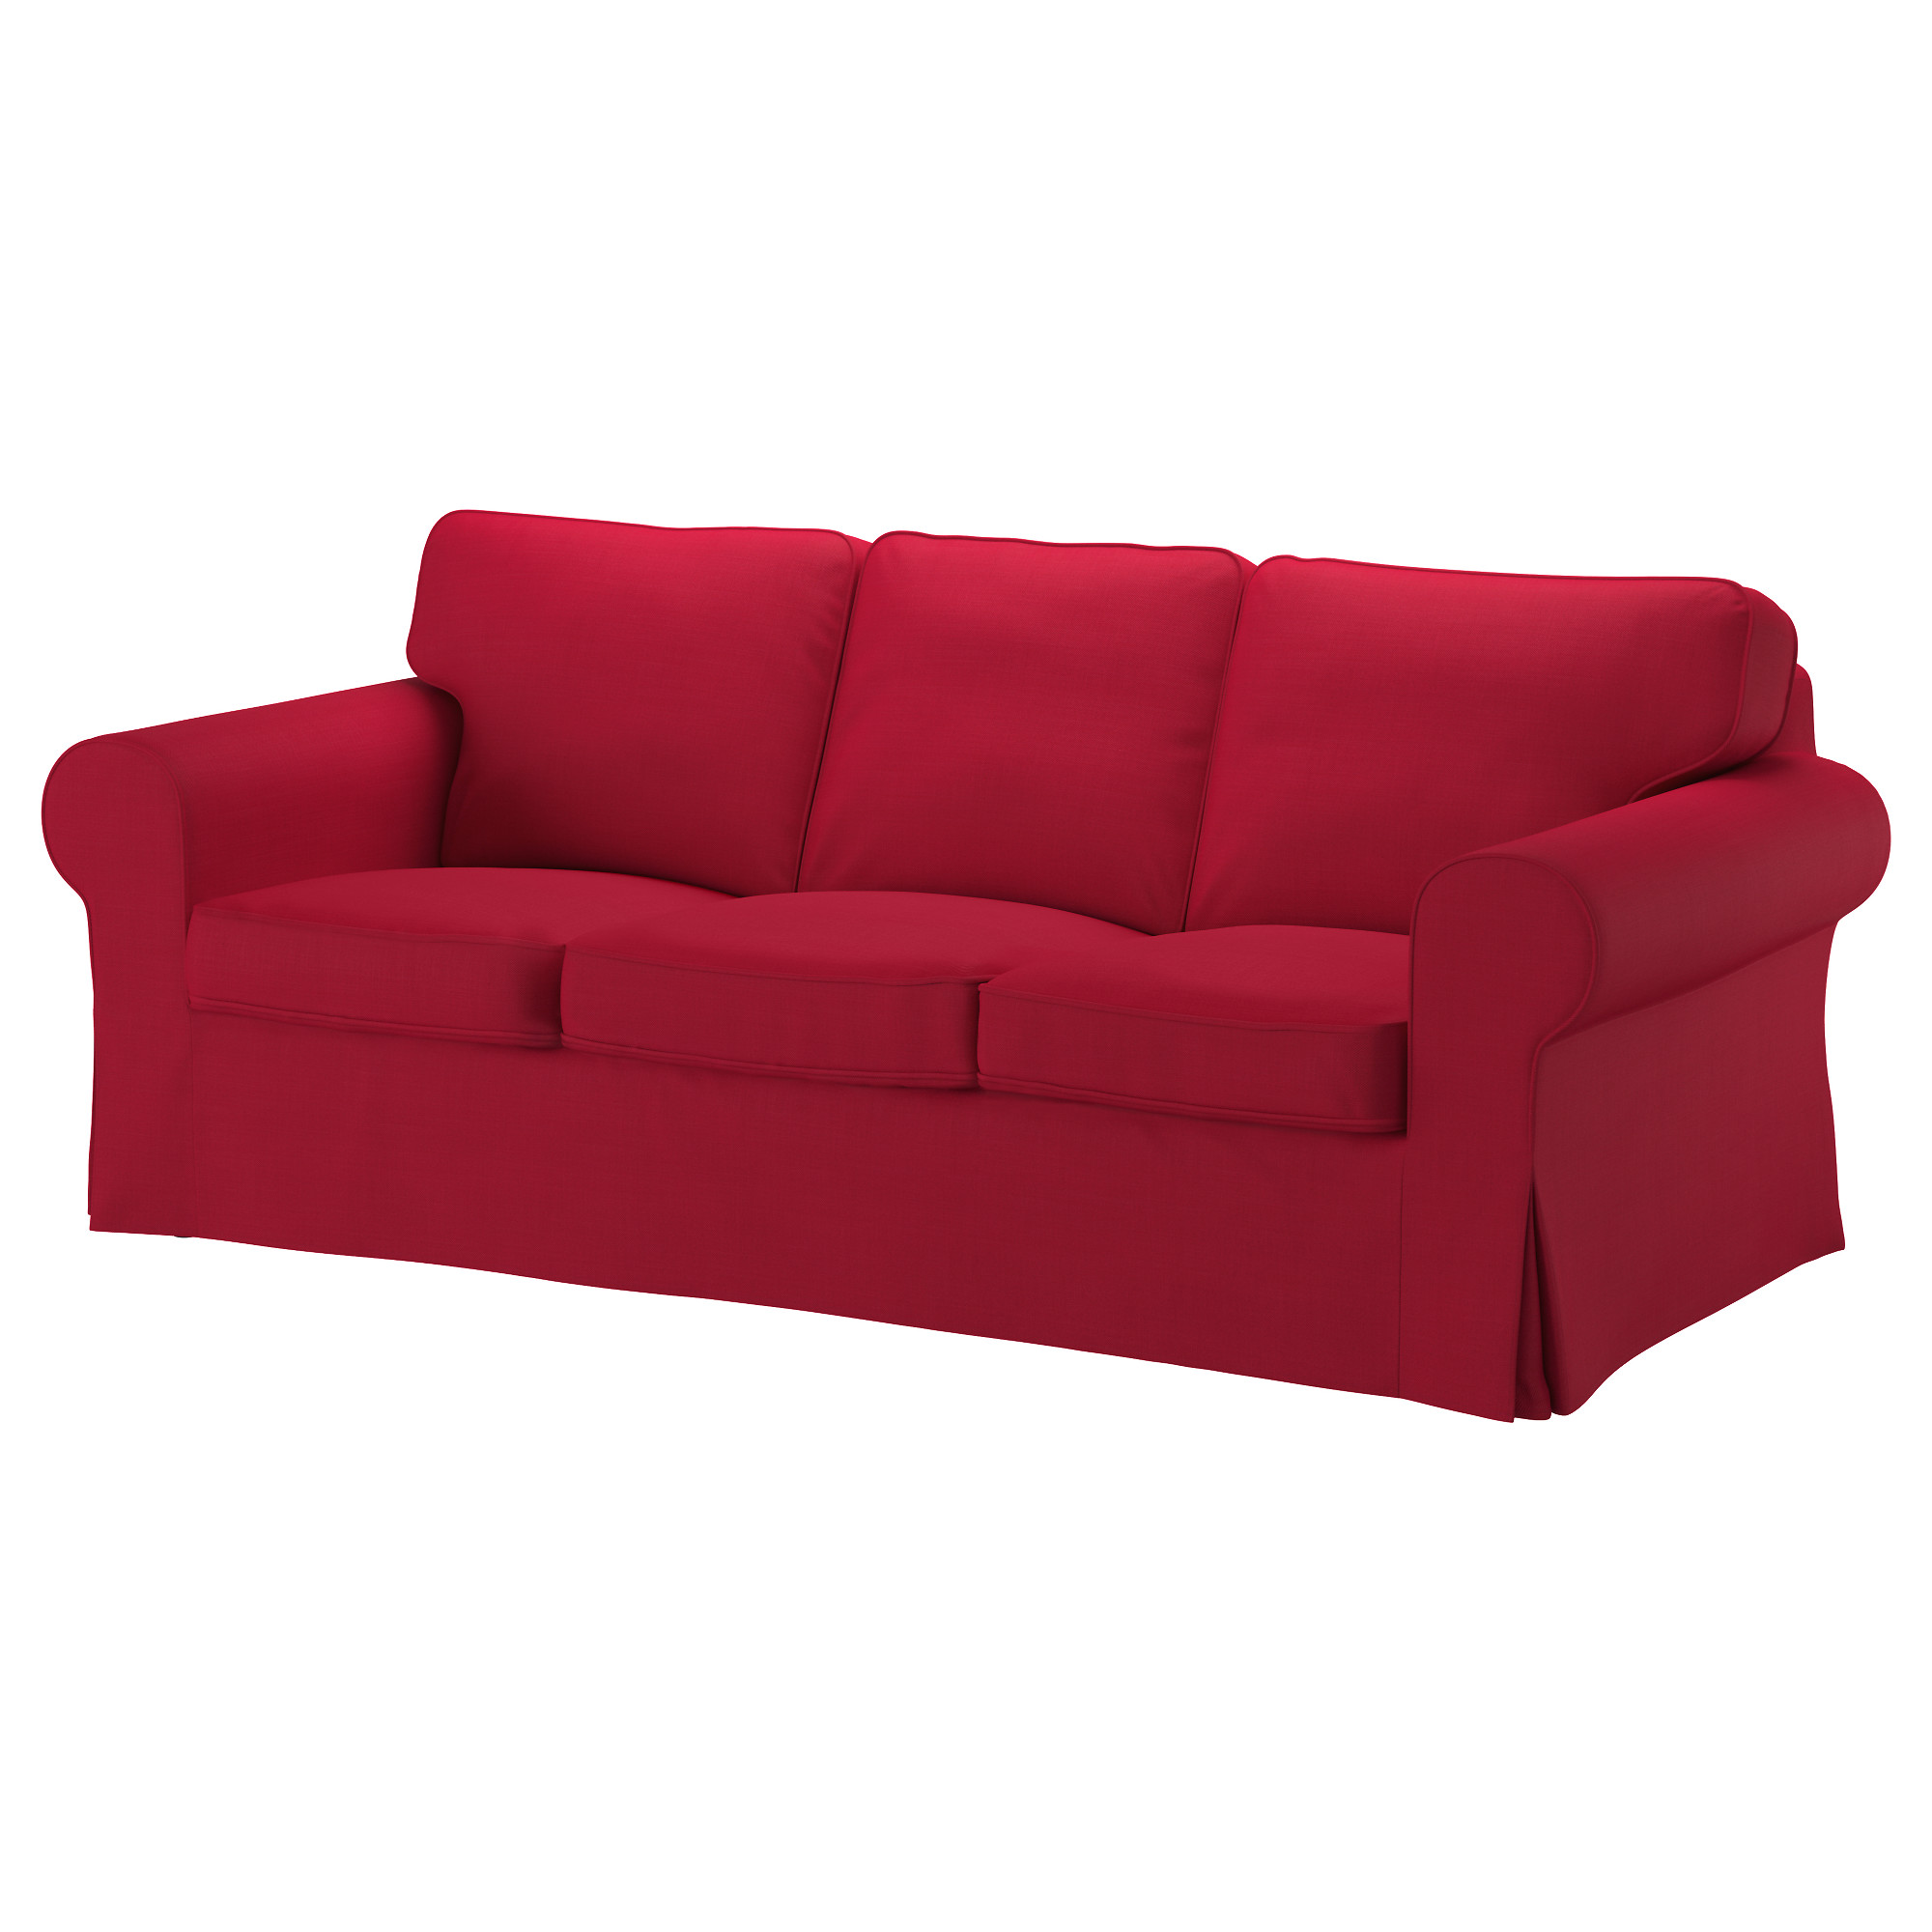 - King Sofa: Red Sofa Ikea